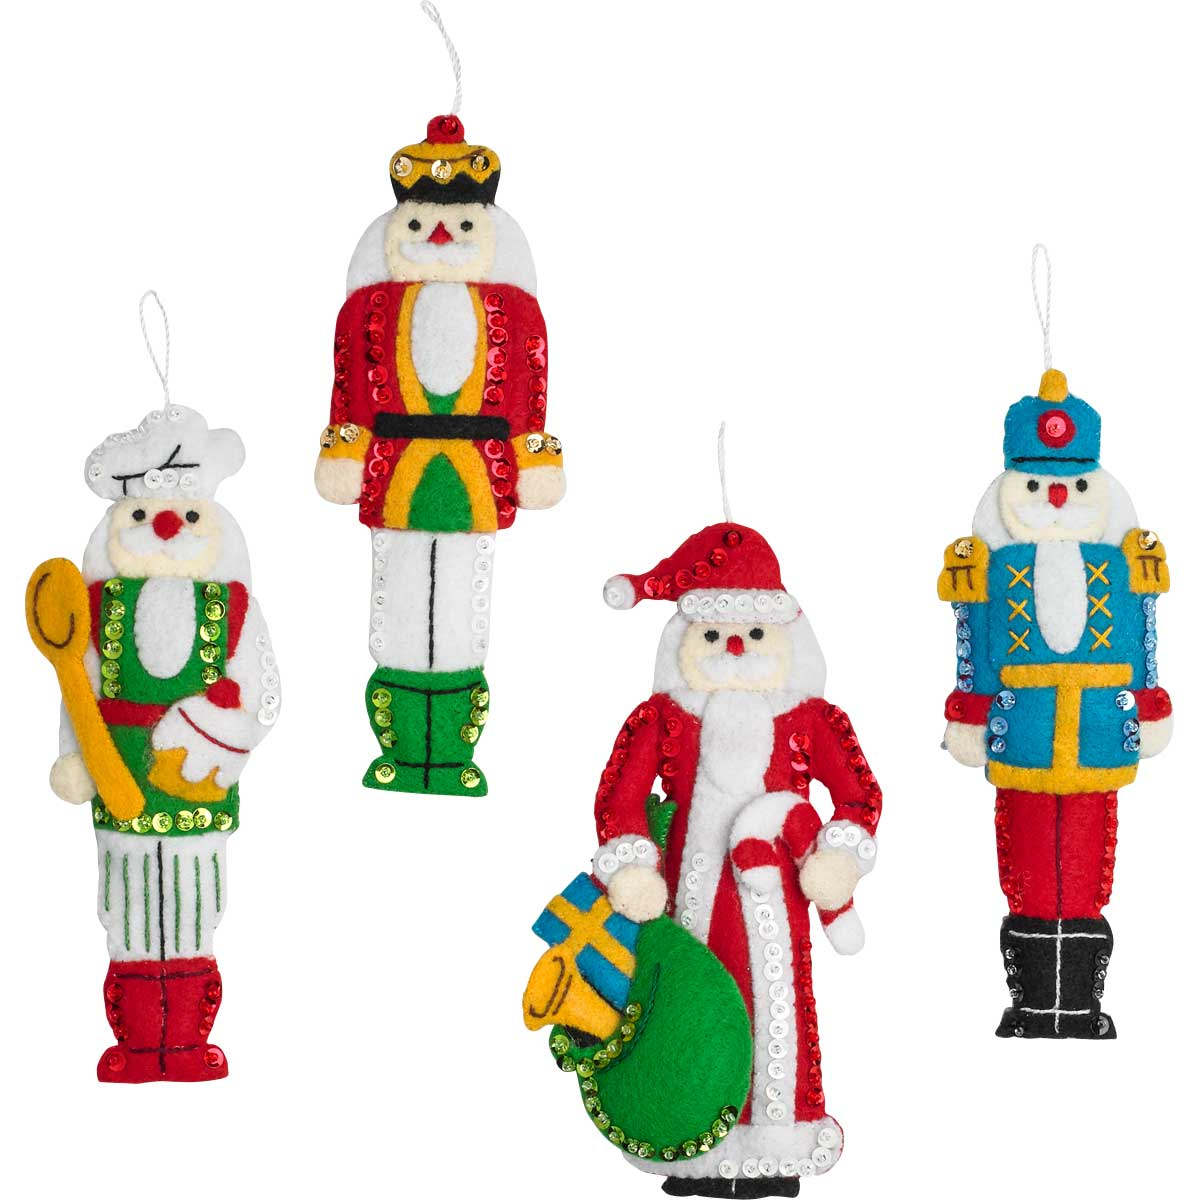 Bucilla ® Seasonal - Felt - Ornament Kits - Hallmark - Christmas Classic Nutcracker - 86967E